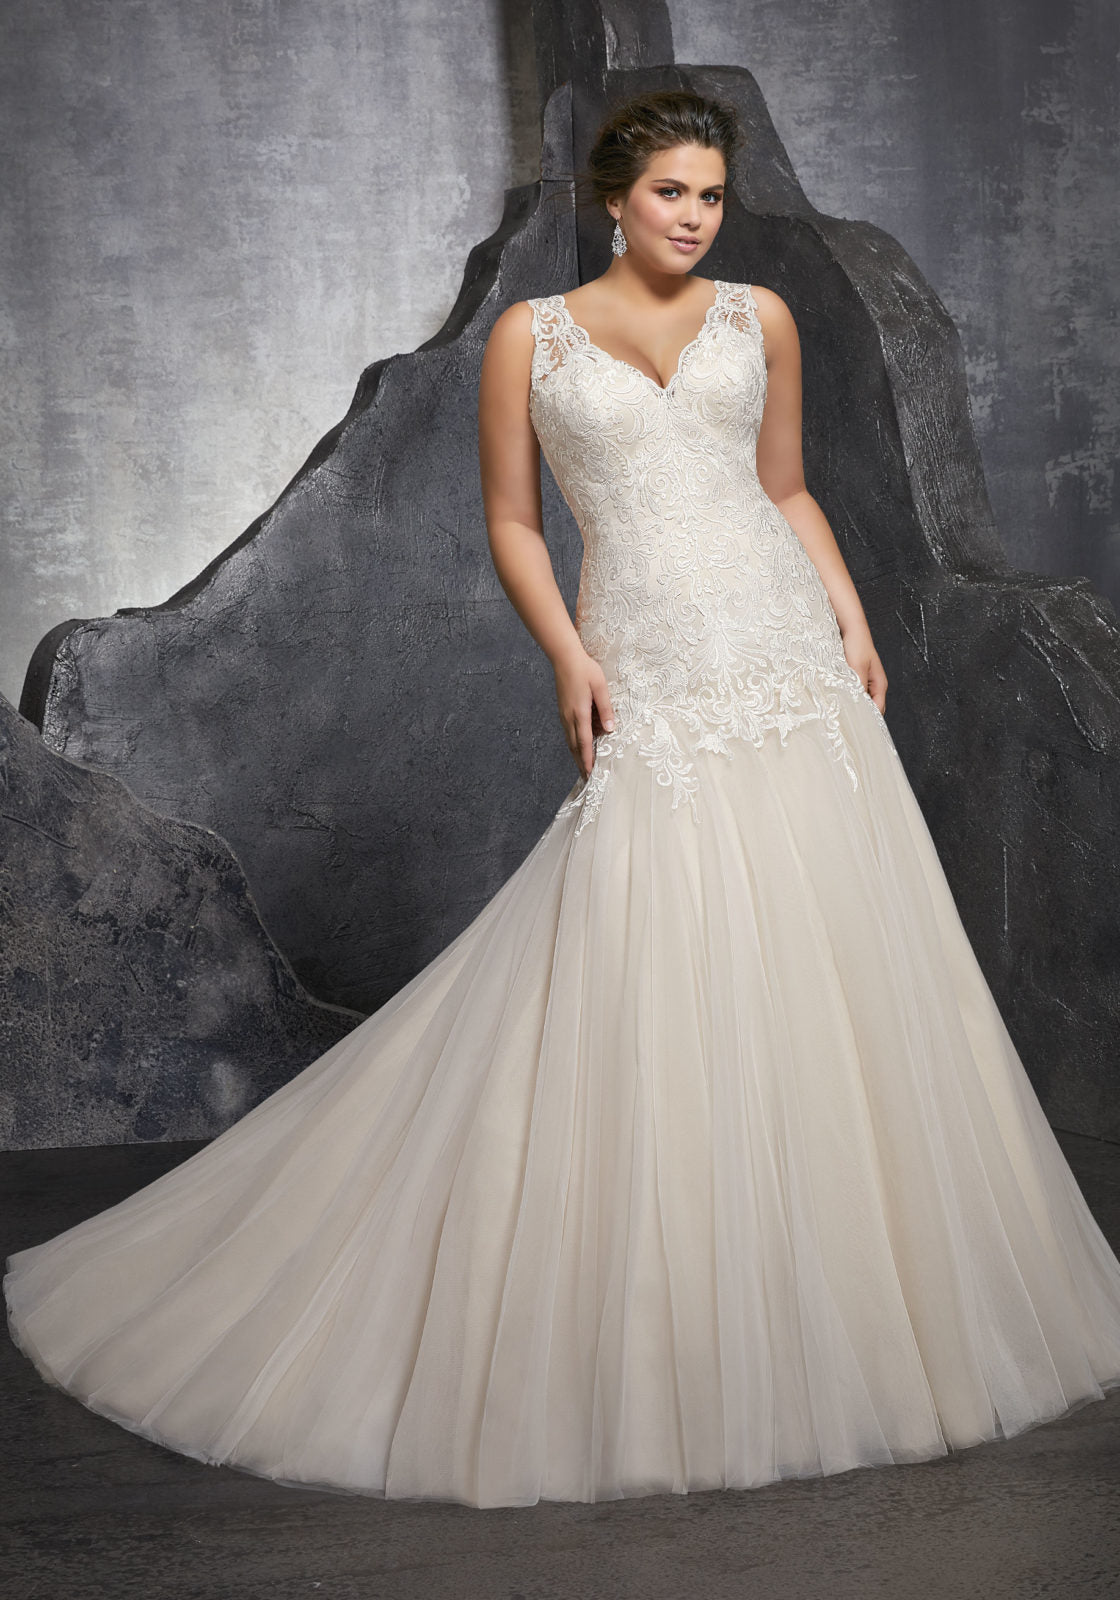 #0612 - Concepcion Bridal & Quinceañera Boutique